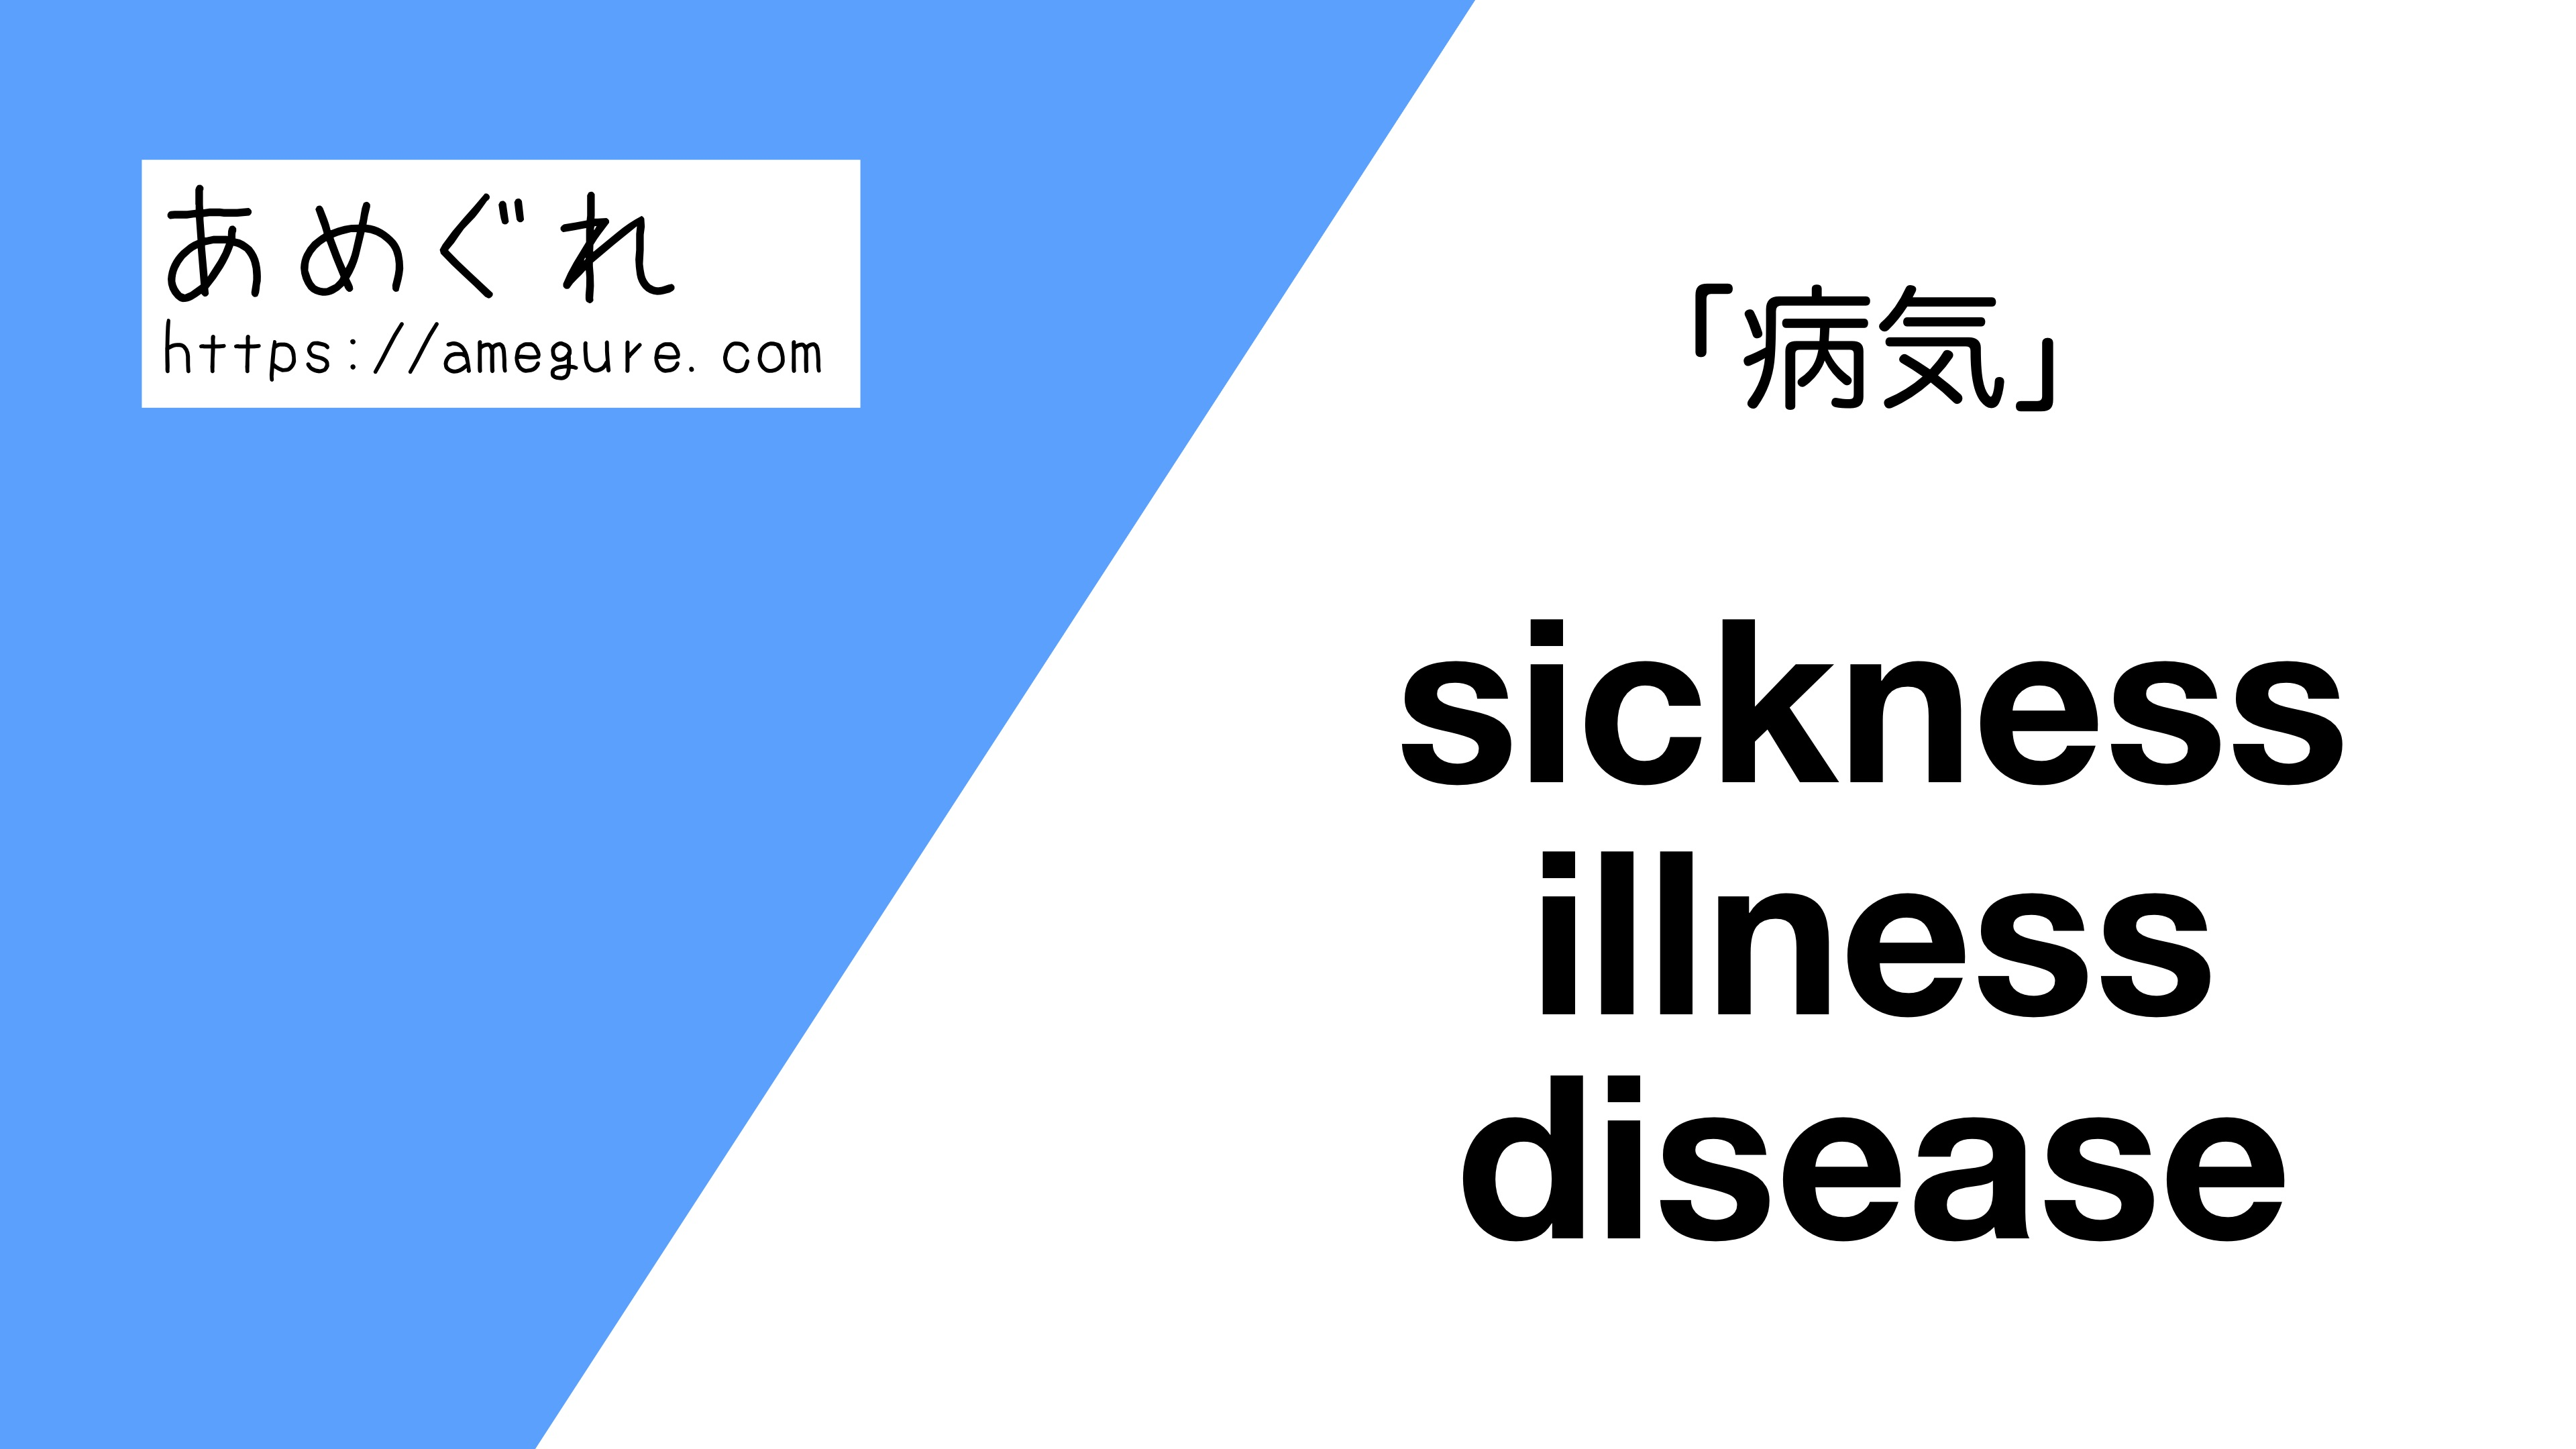 sickness-illness-disease違い